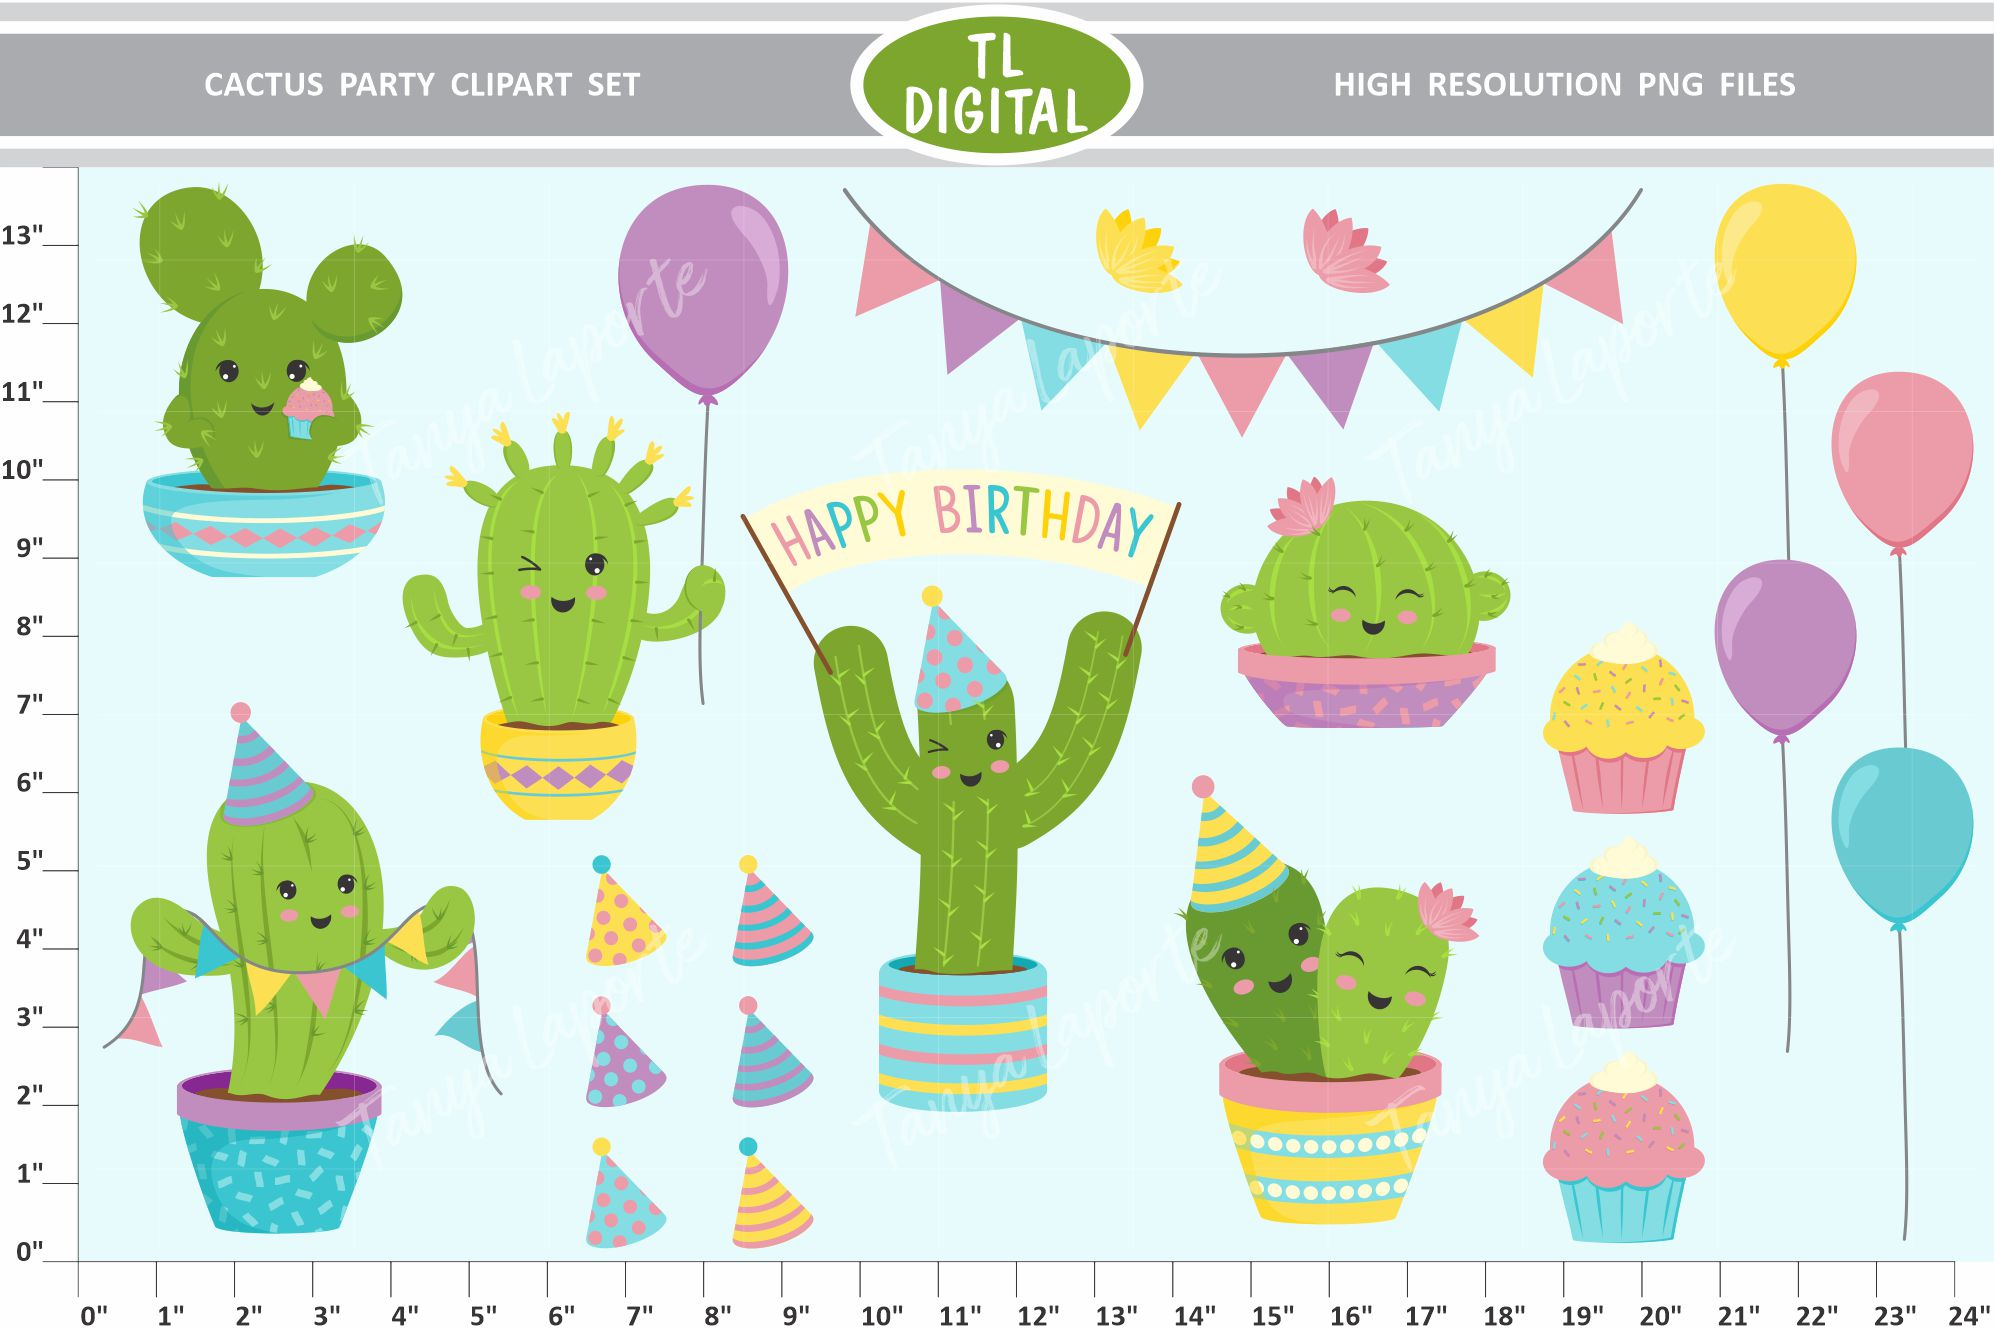 Cactus Party Clipart Set - 22 Birthday Graphics - PNG Files example image 1